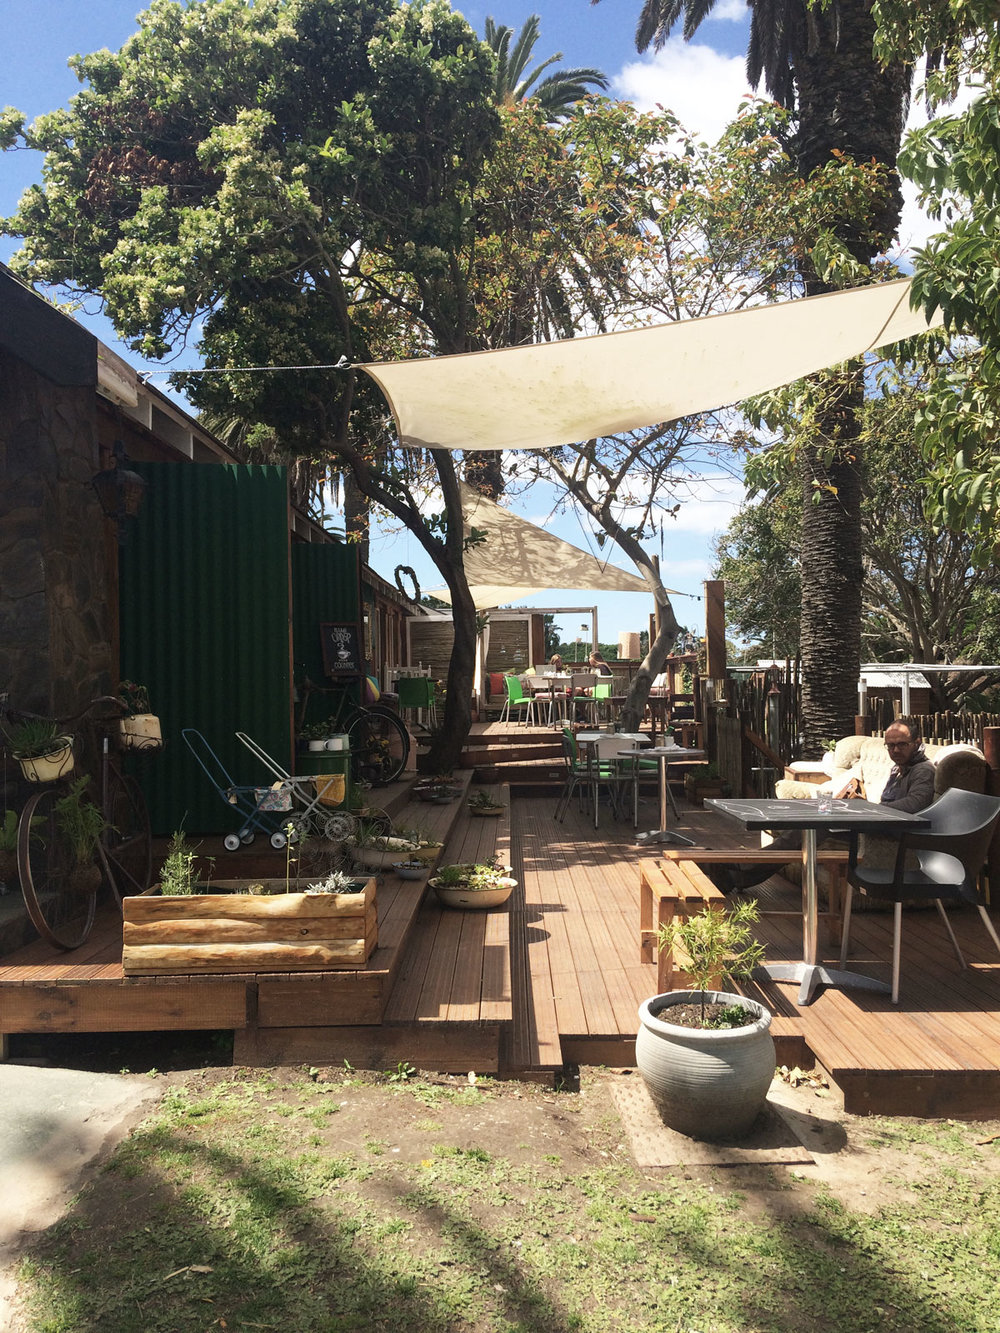 The Green Shed Coffee Roastery